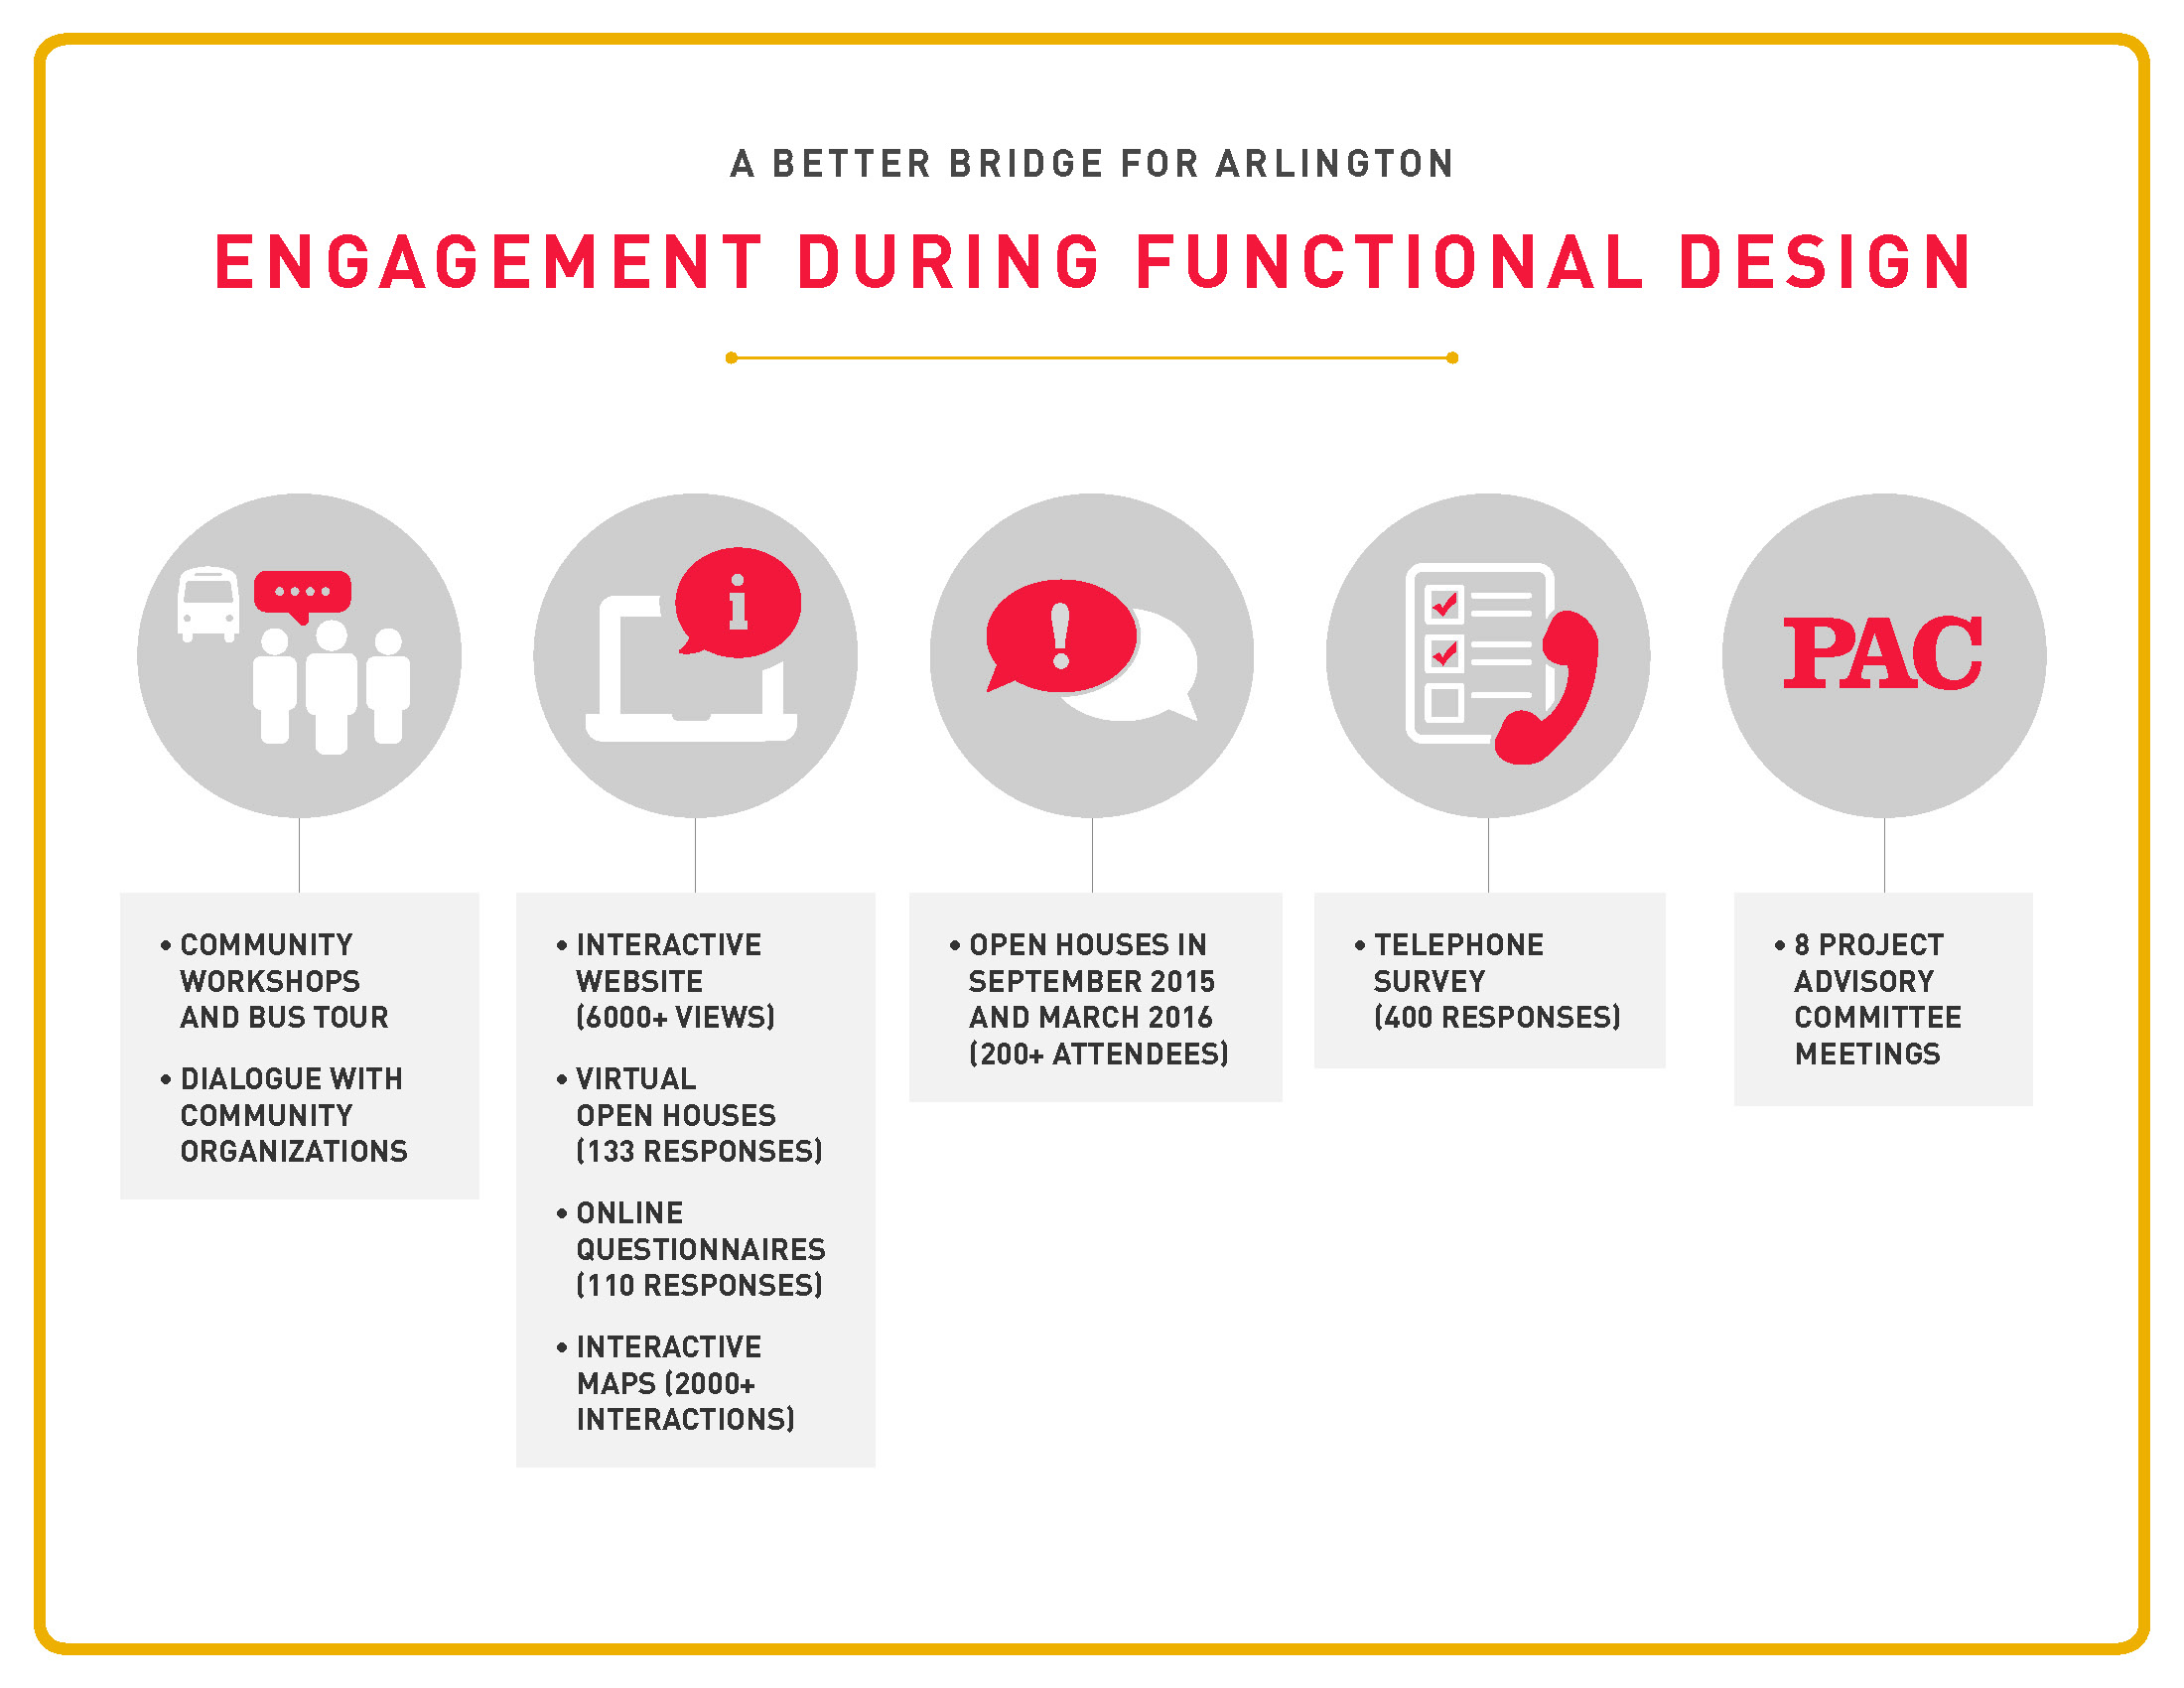 Engagement during functional design